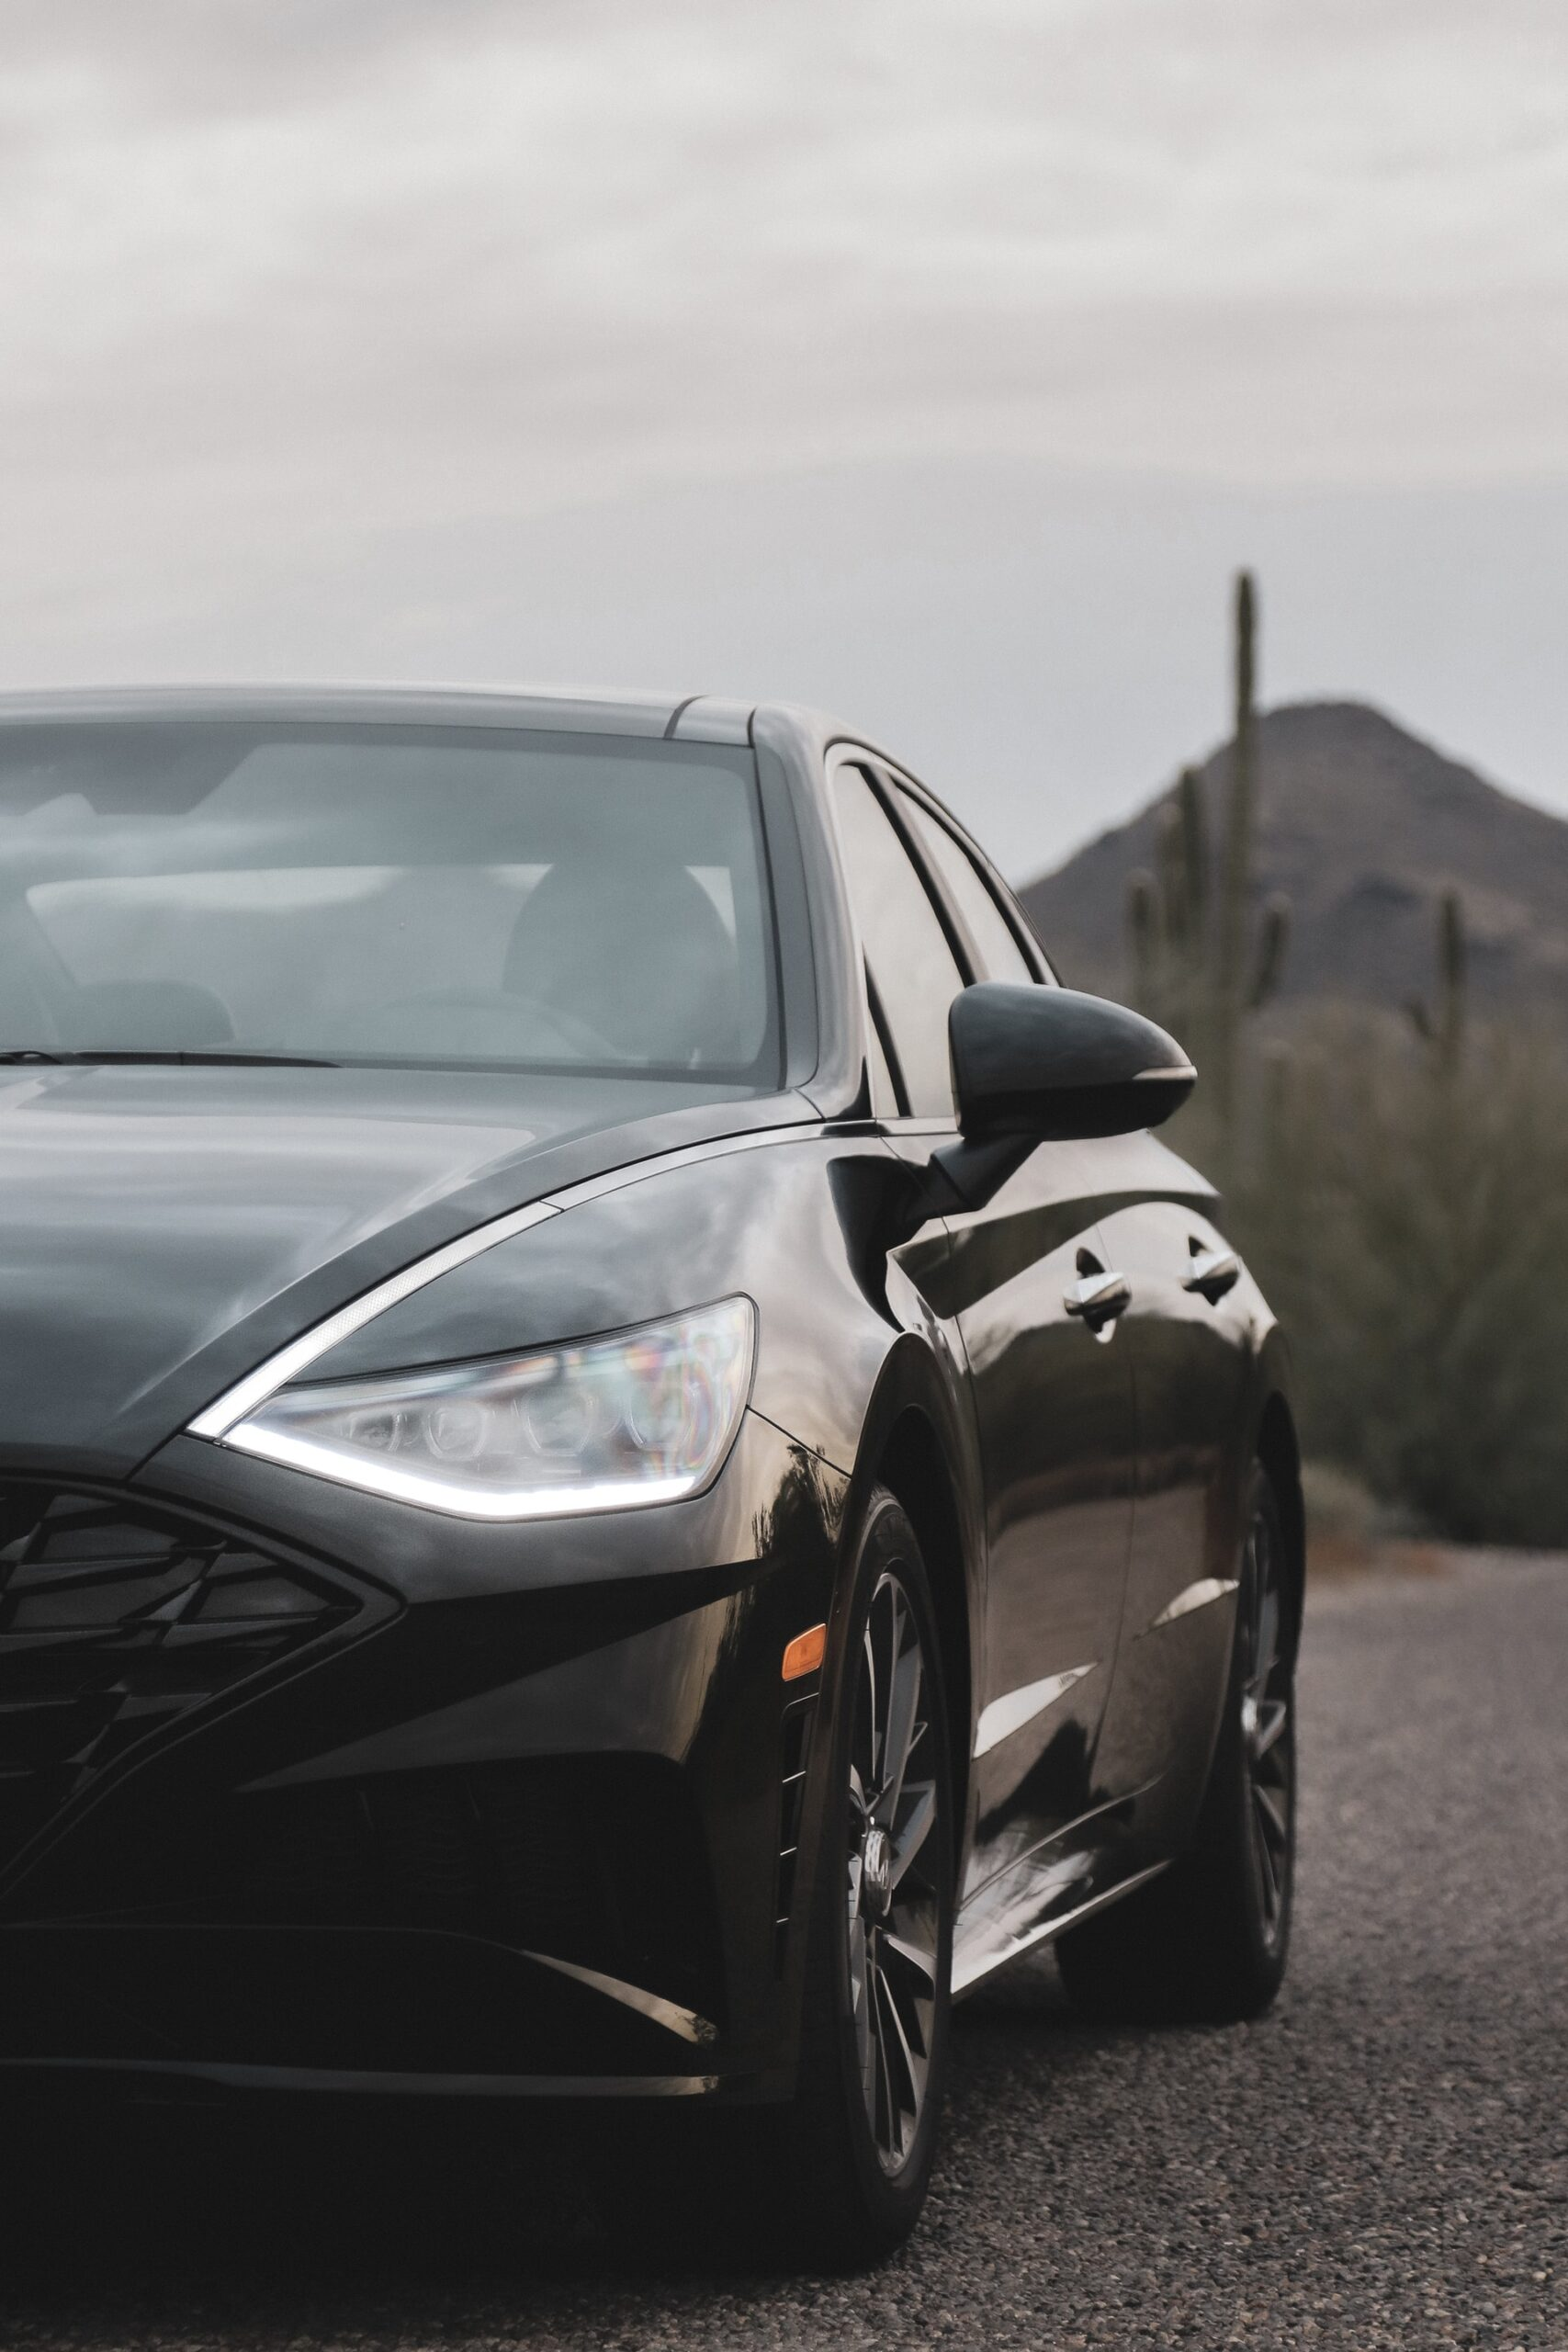 Guide to Buying a Car: 9 Big Things to Consider Now